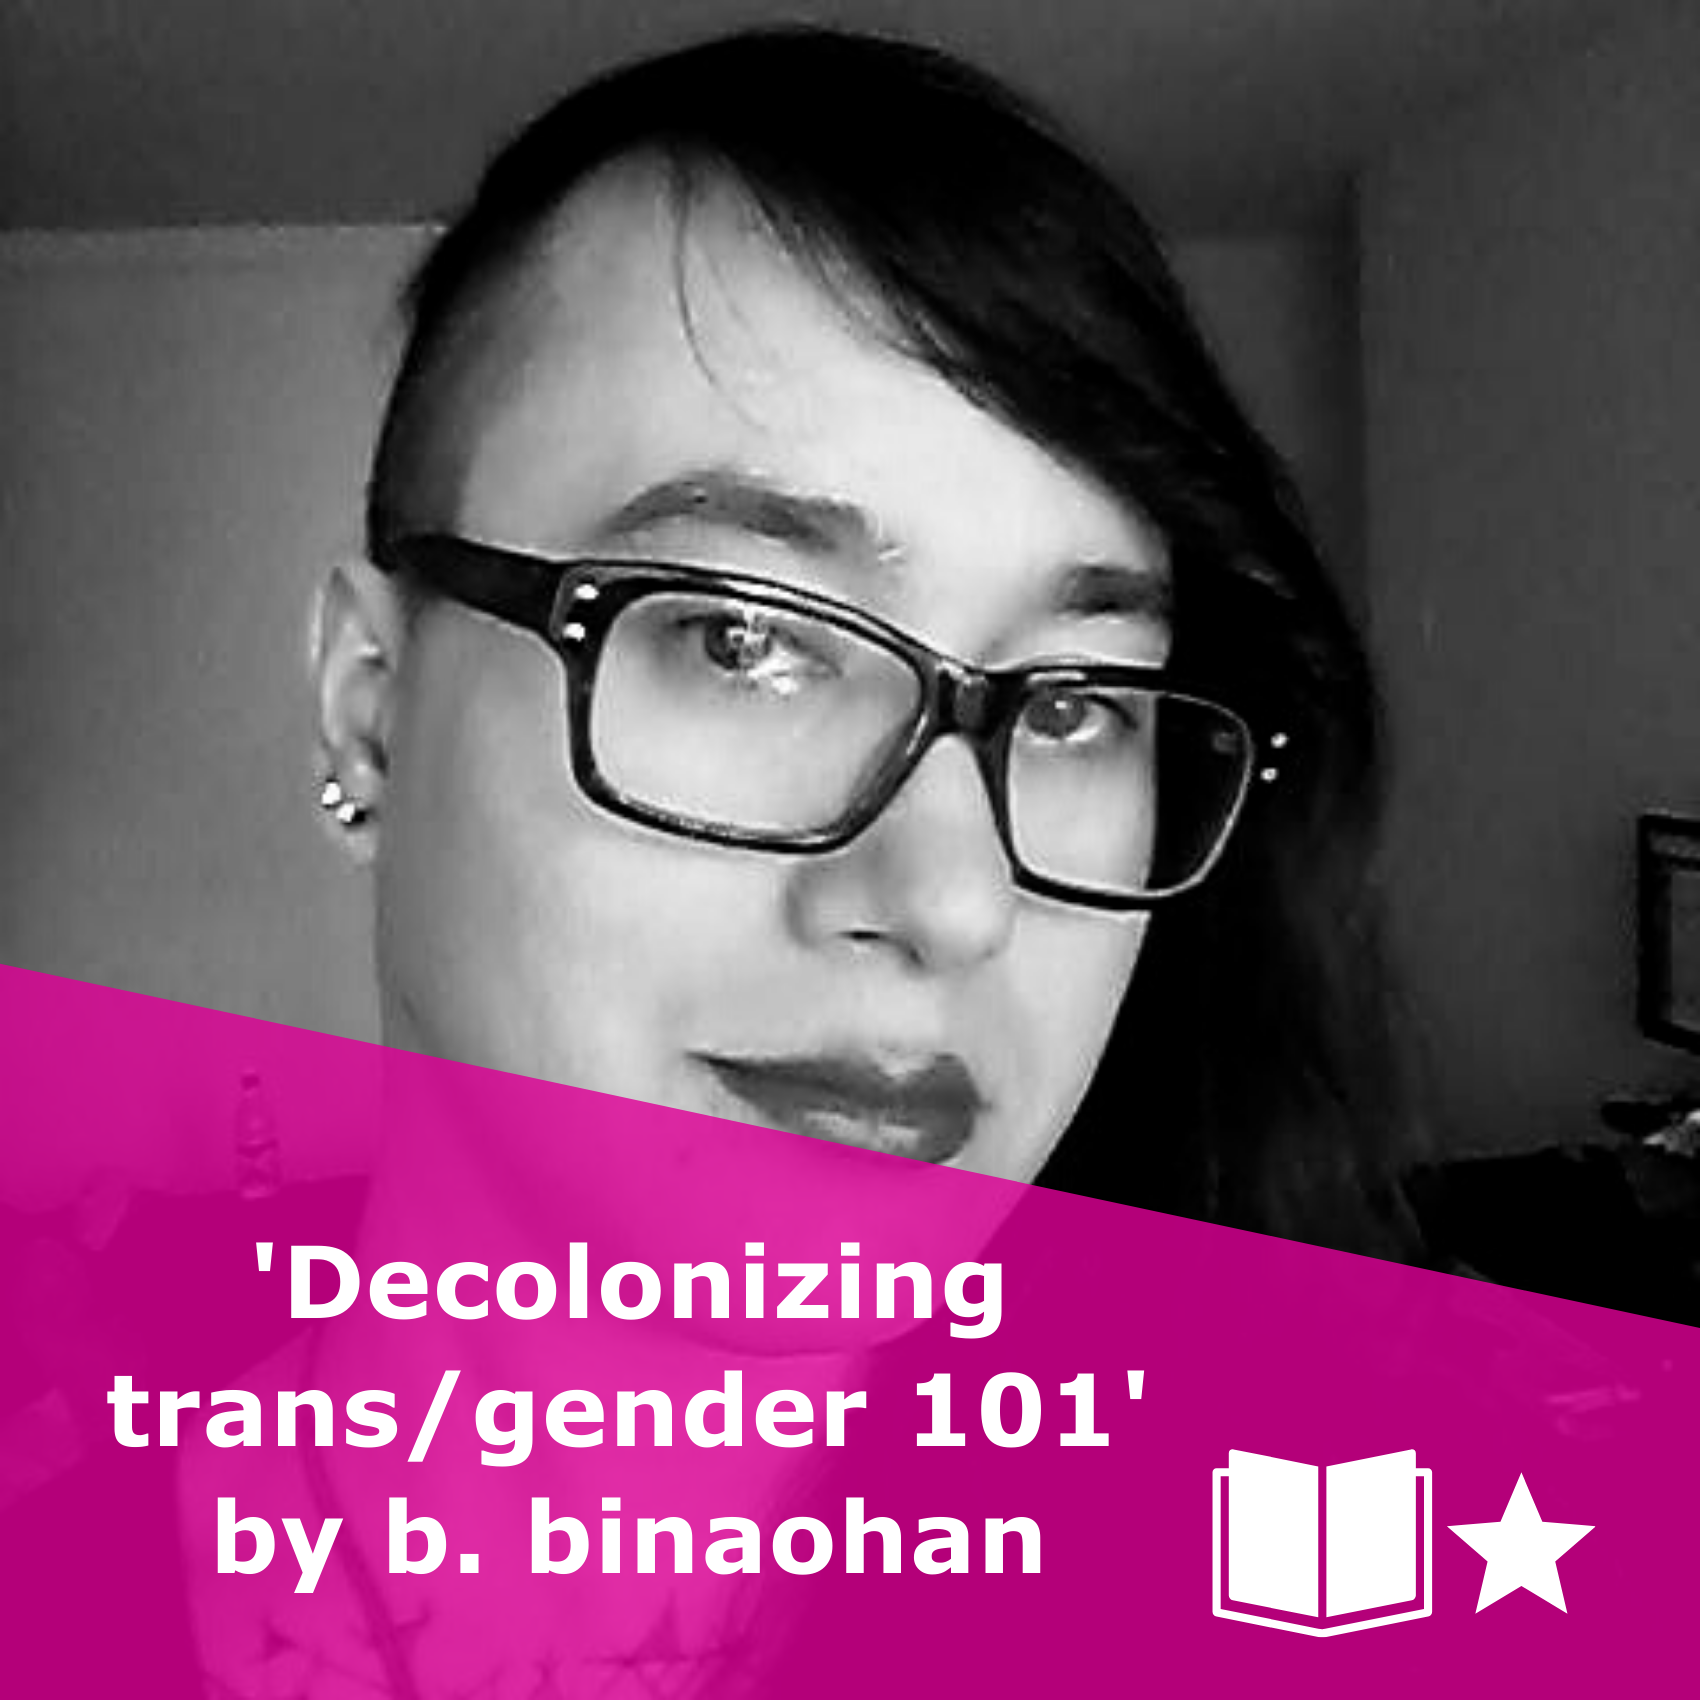 Picture of b. binaohan in black and white. Title 'decolonizing trans/gender 101'. It is a book, rated one star.